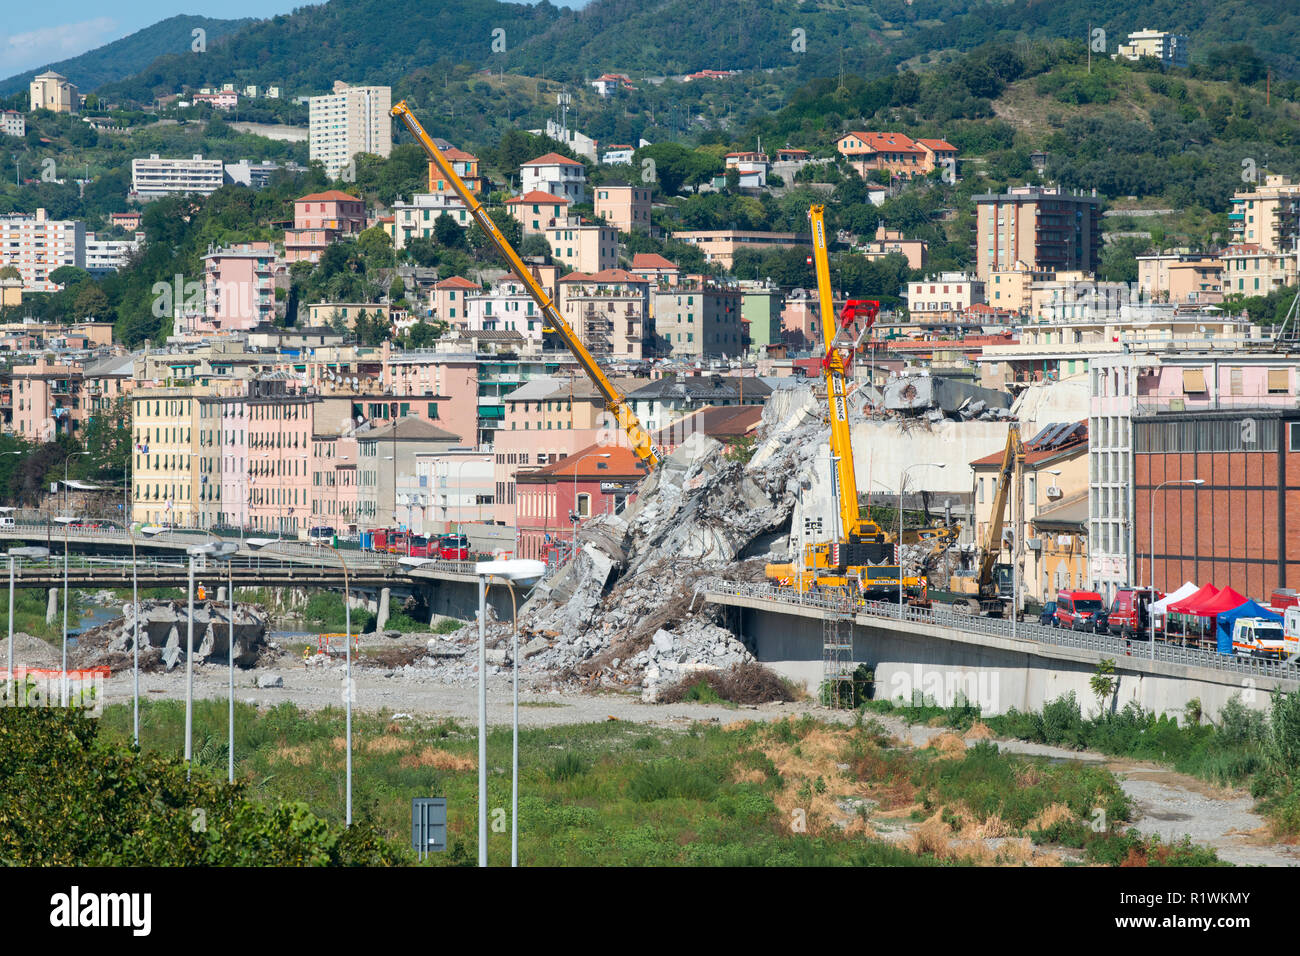 Structural Failure Stock Photos & Structural Failure Stock Images